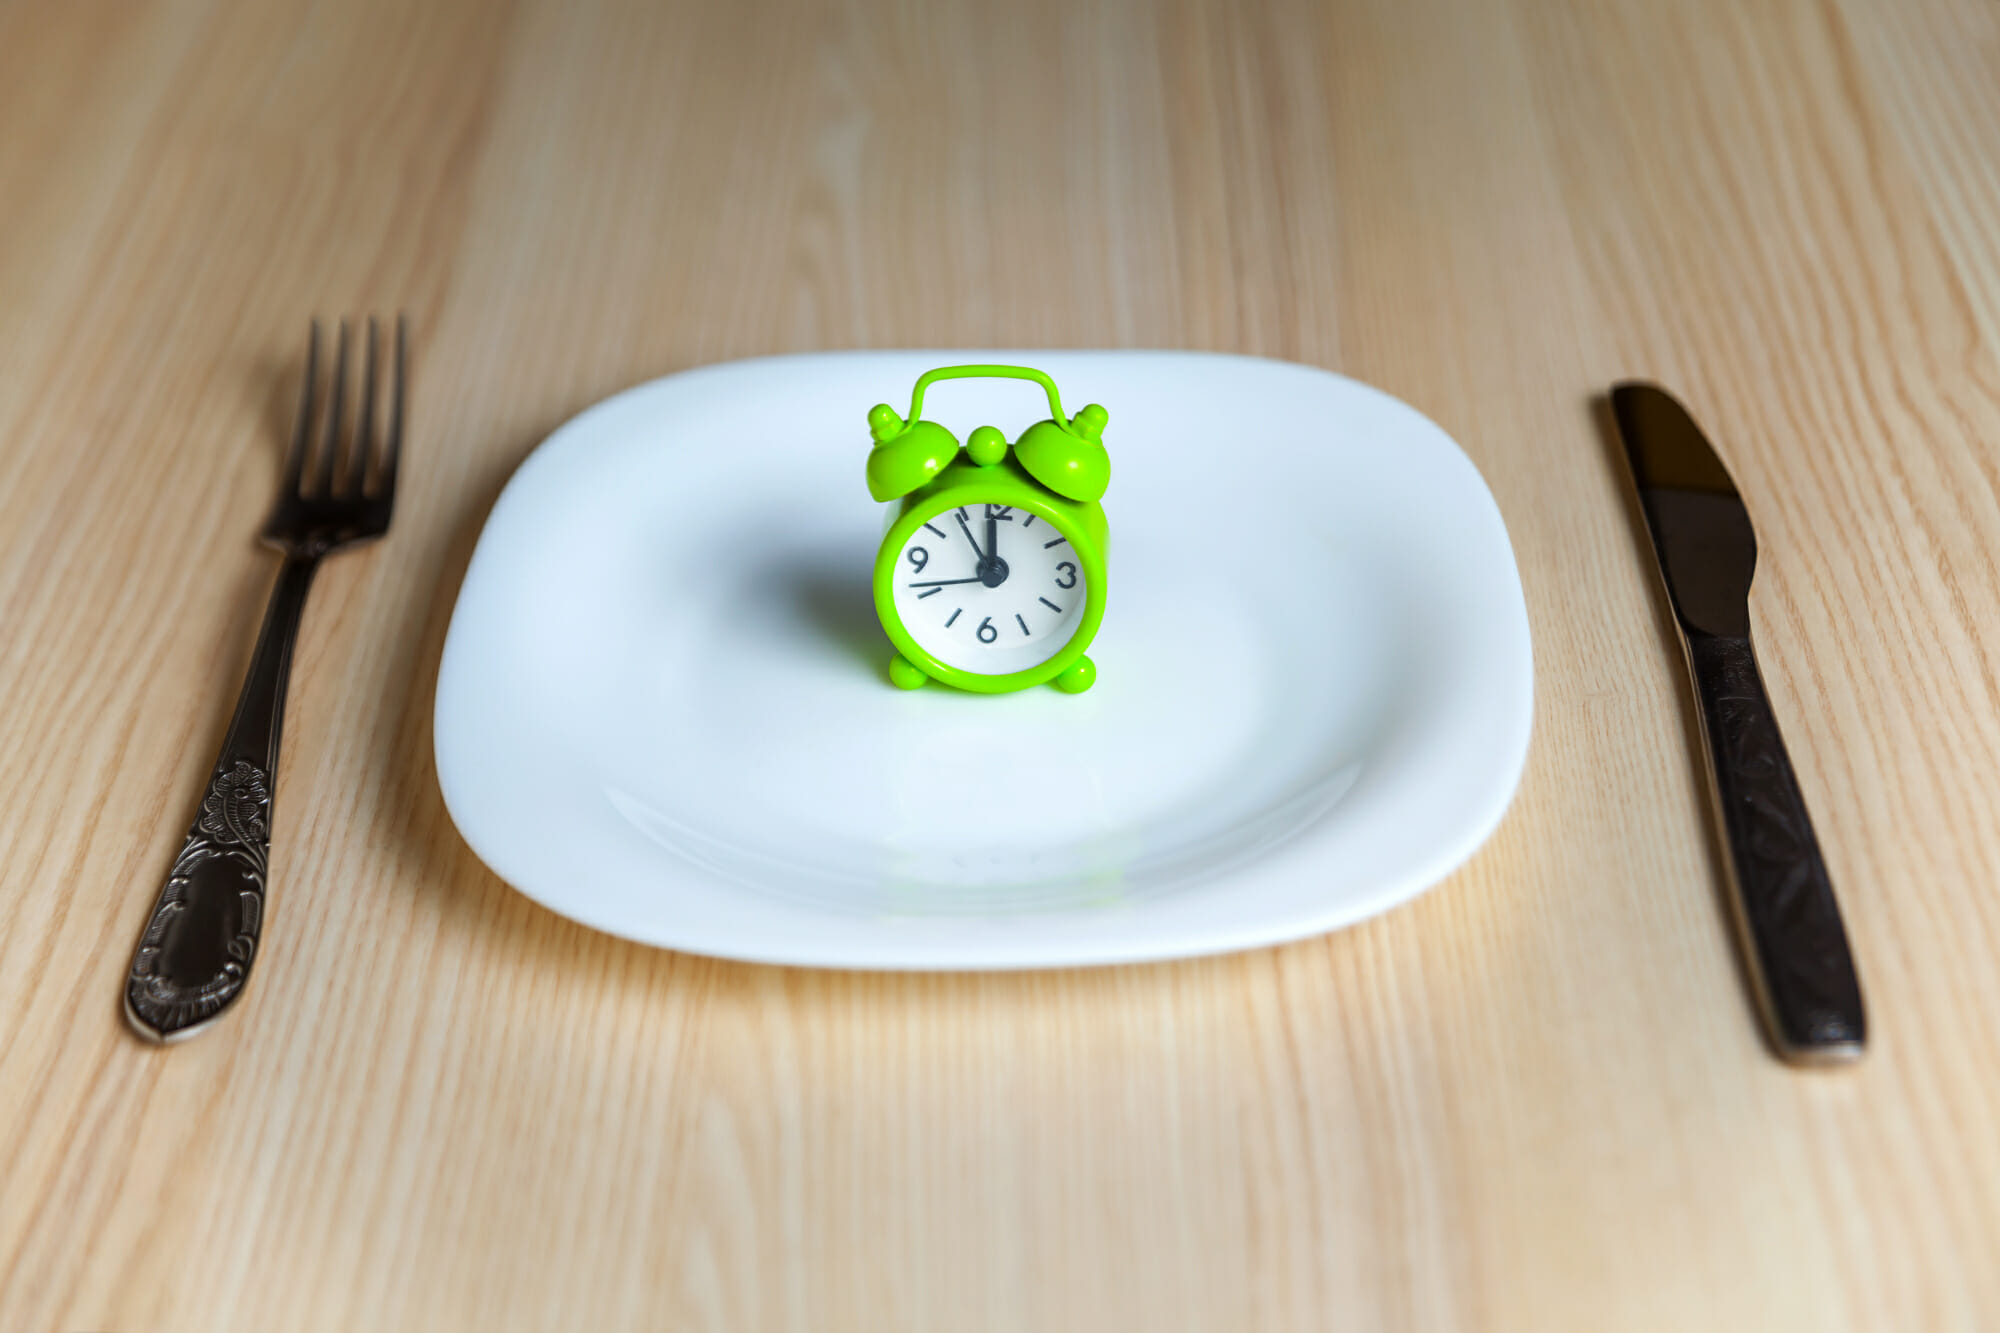 My personal keto diet mistake: overeating my calorie deficit